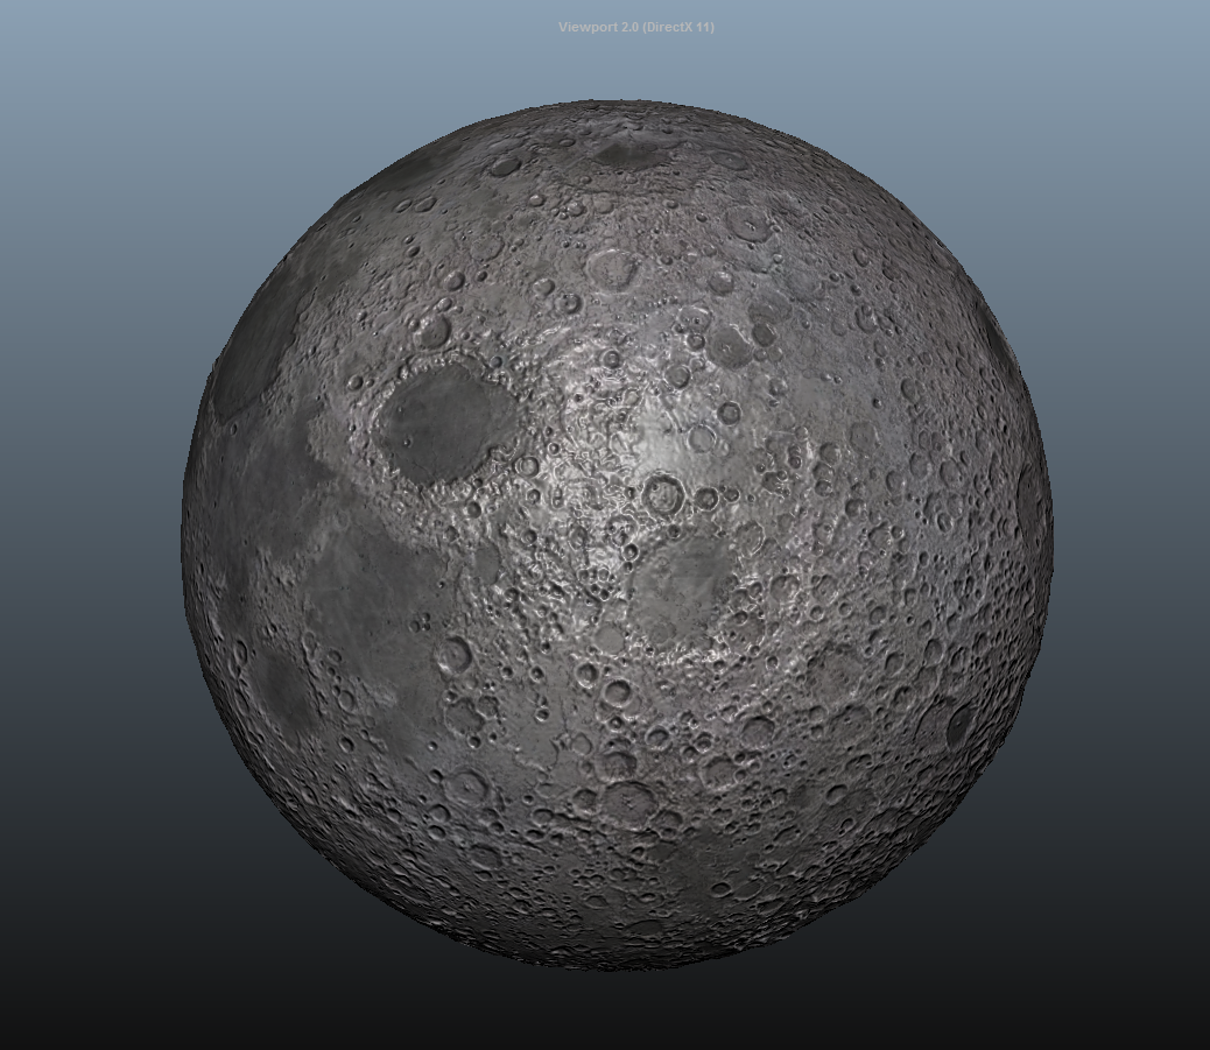 Moon planet - Normal map mid poly - 8K Res